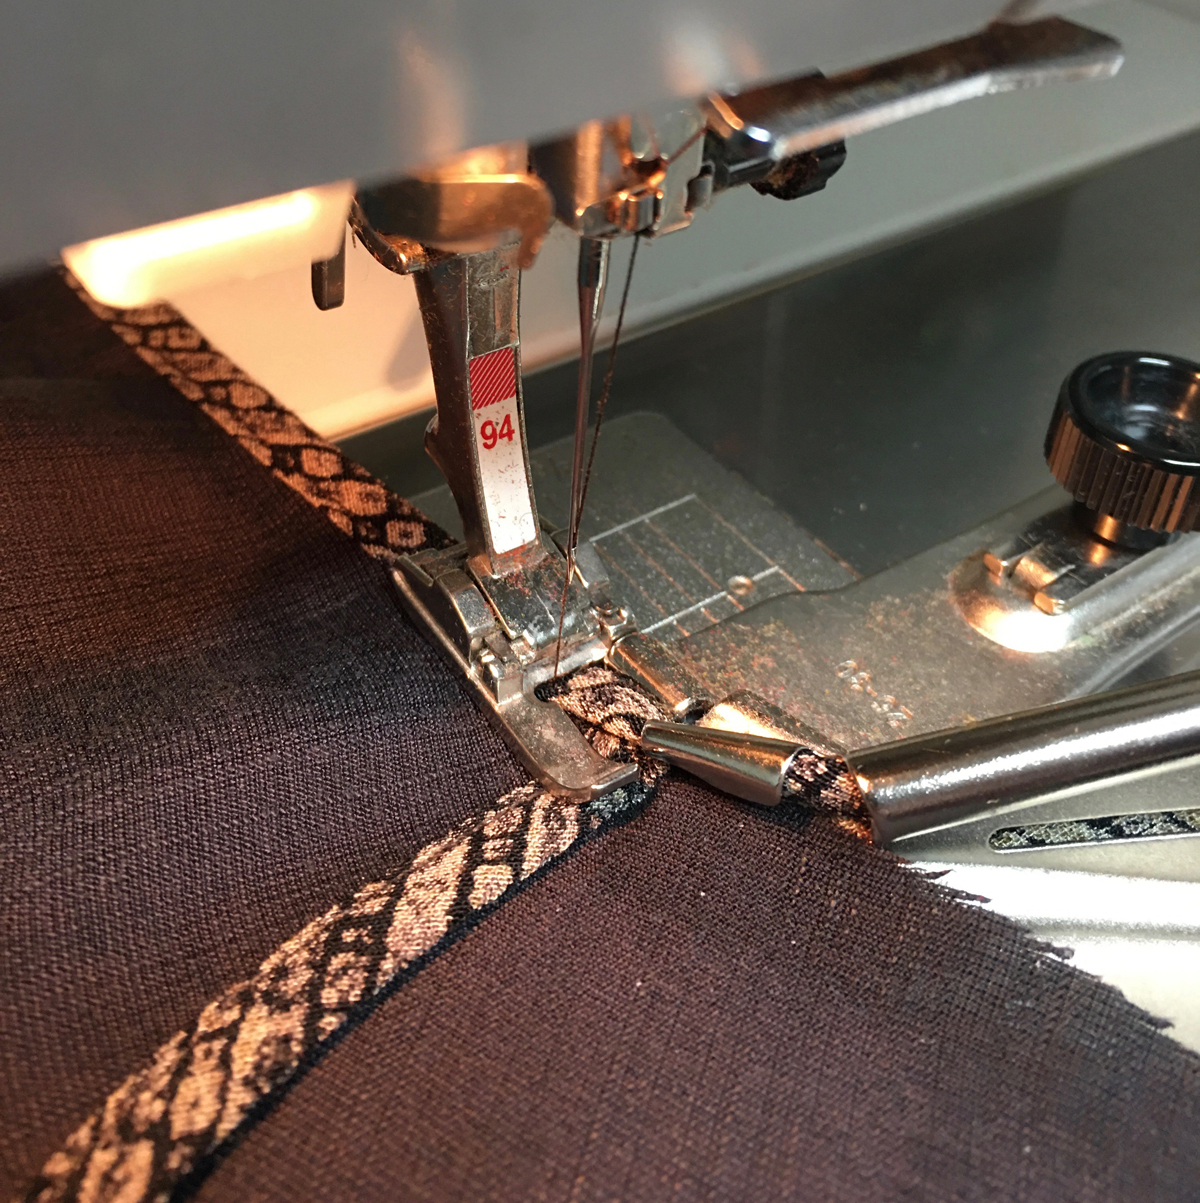 Binding being sewn onto fabric using a binding foot on the sewing machine